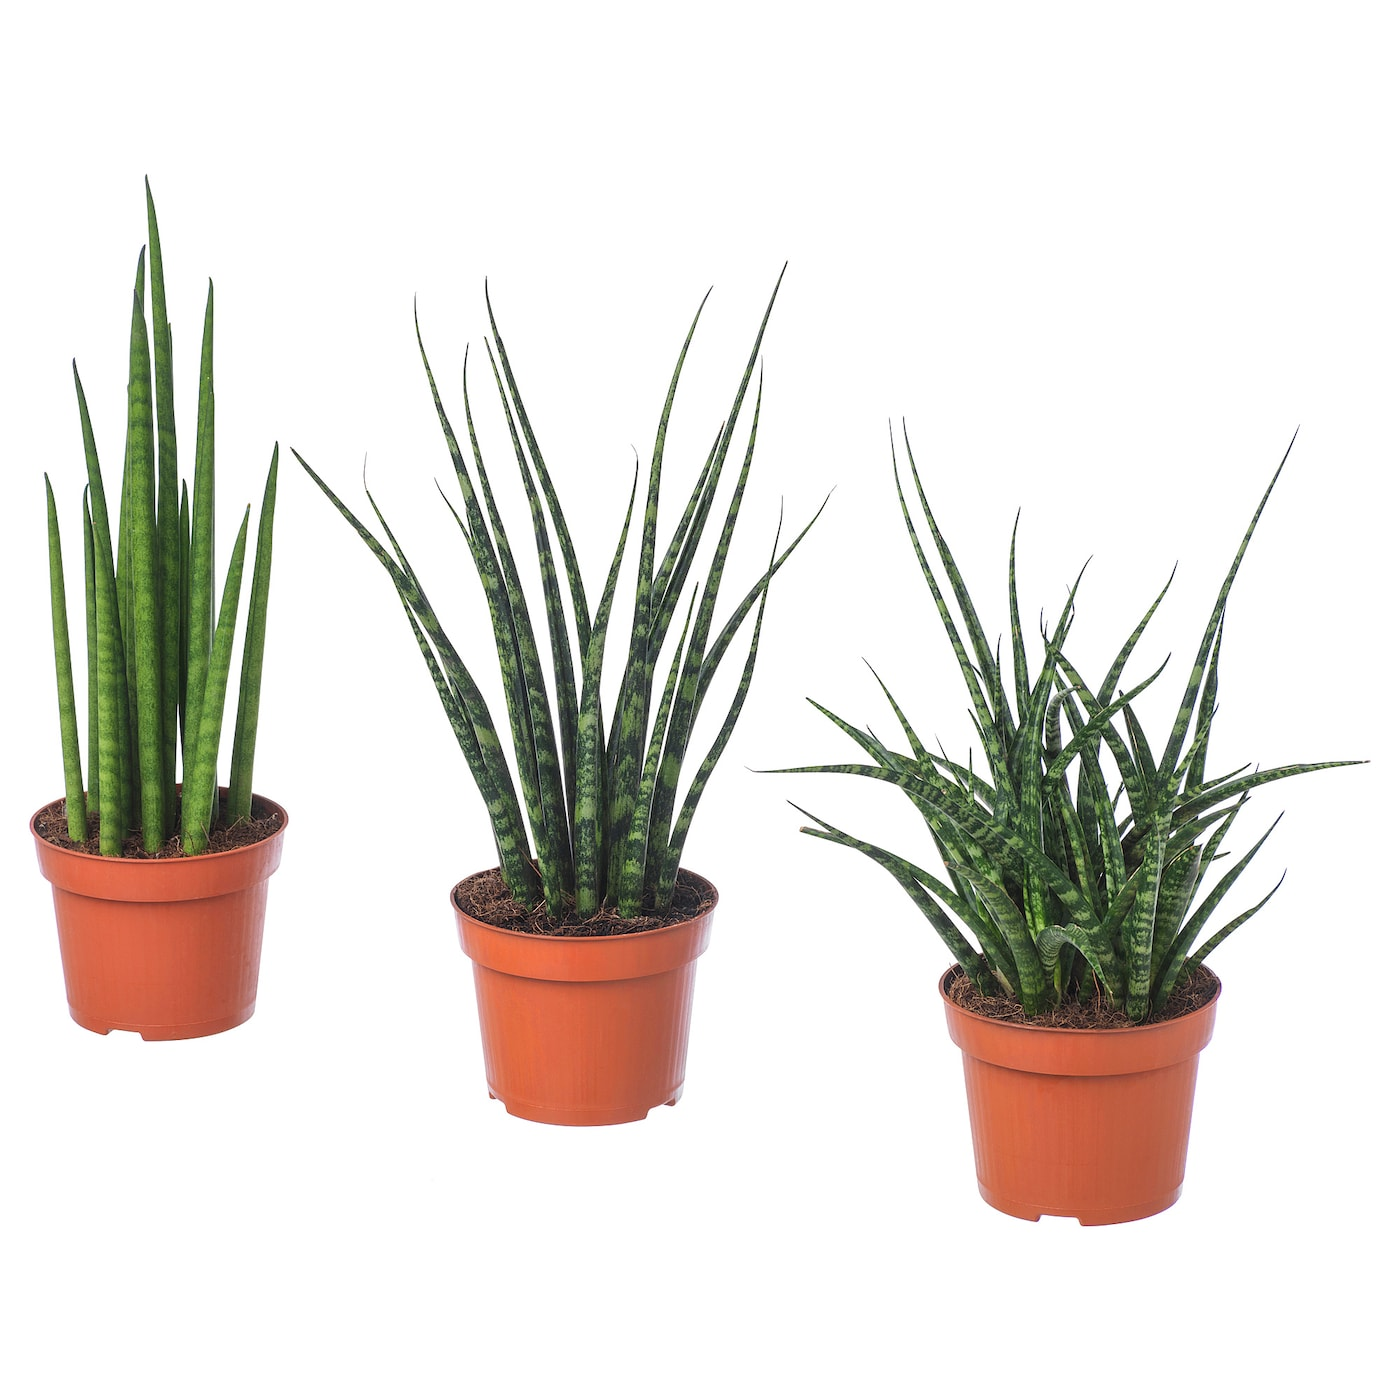 IKEA SANSEVIERIA potted plant